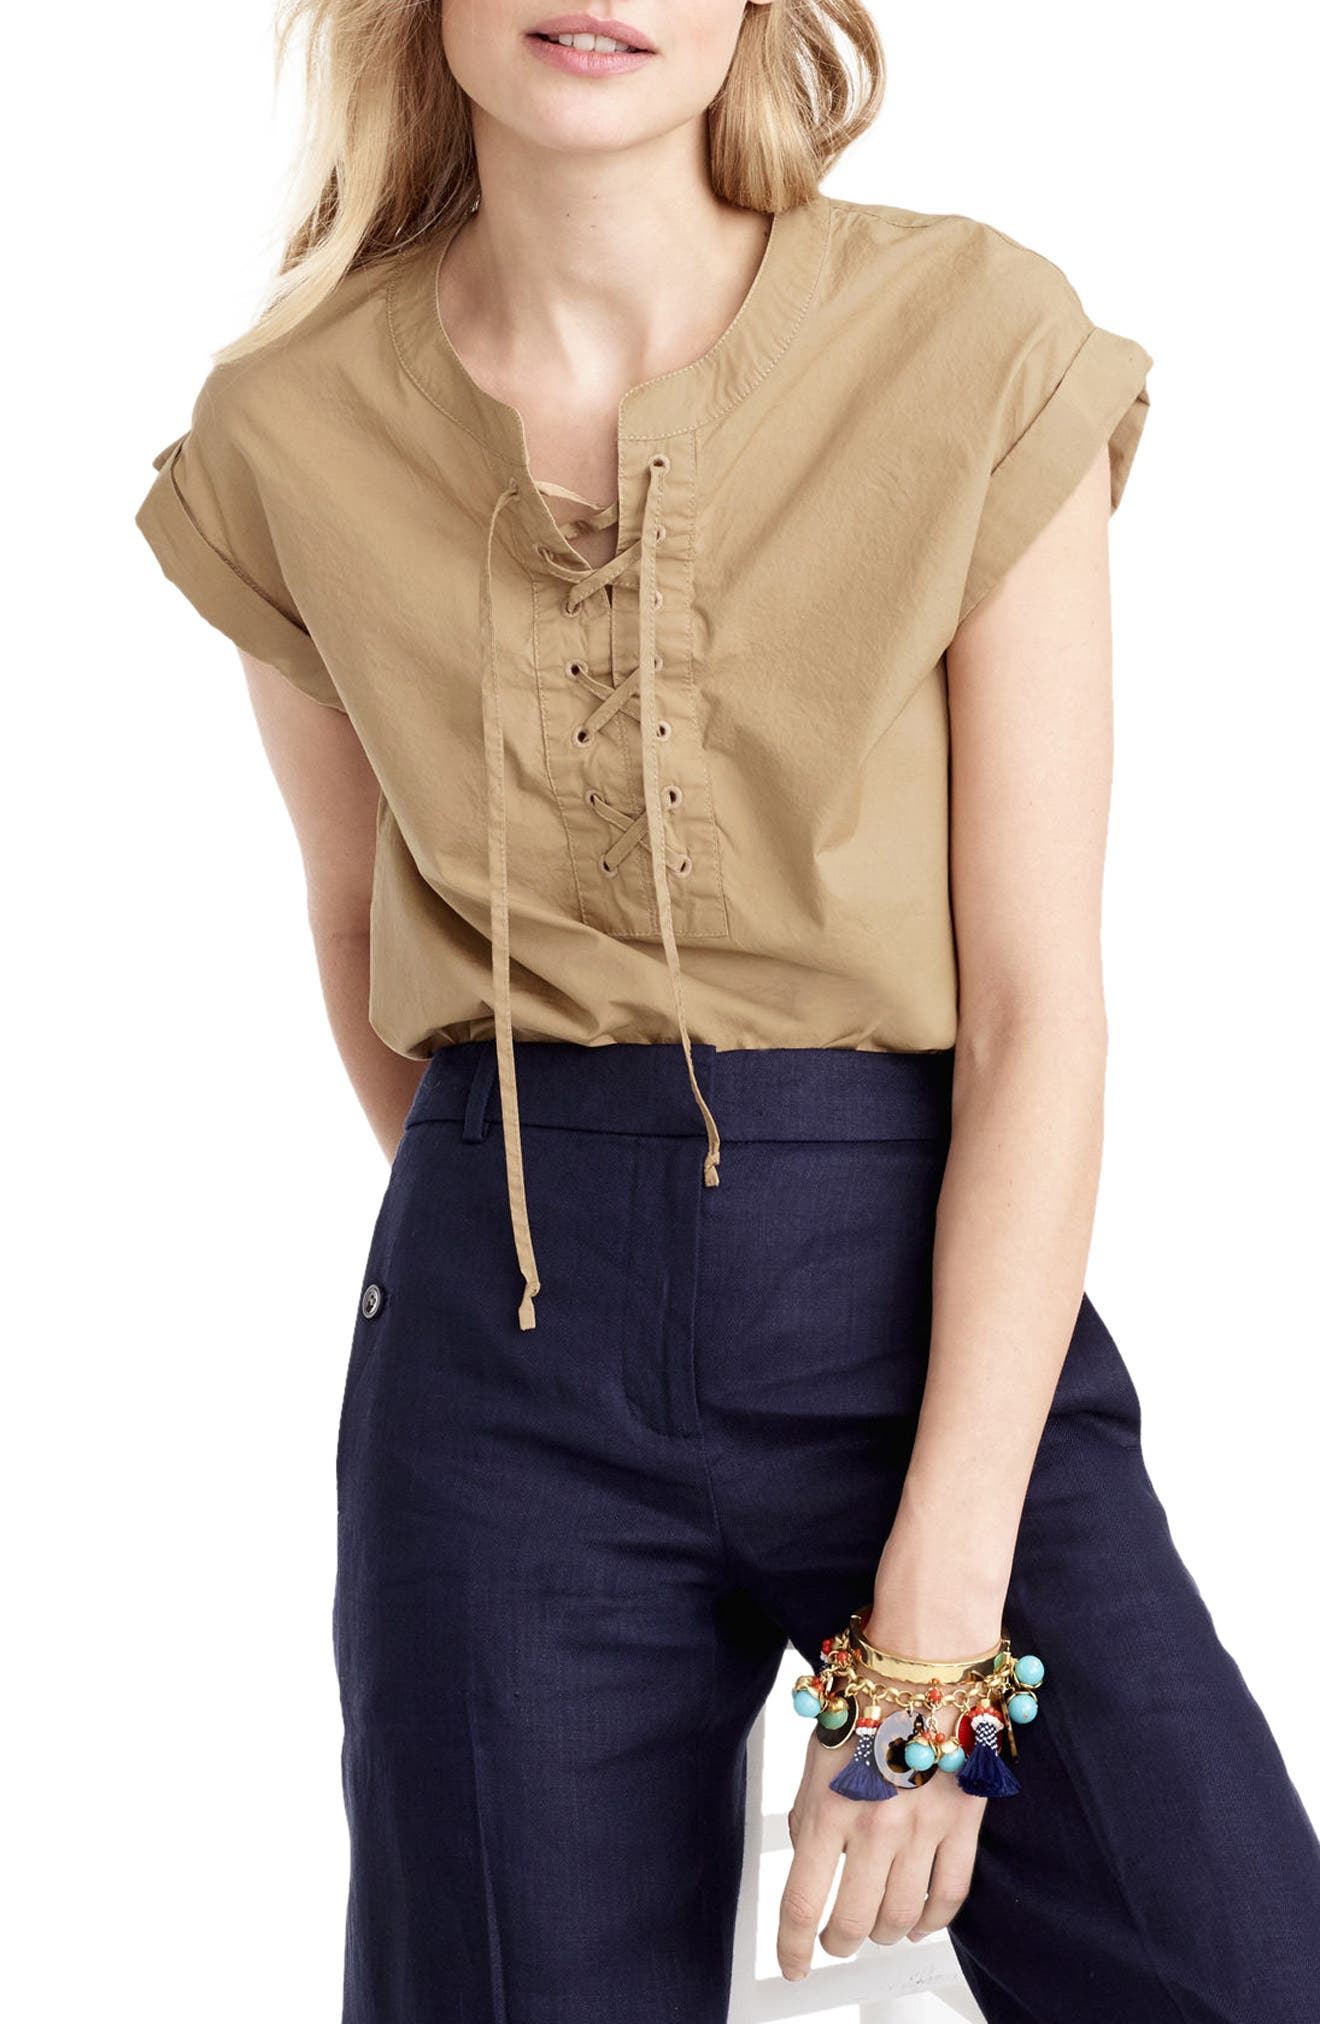 J.Crew Lace-Up Popover Top (Regular & Petite)